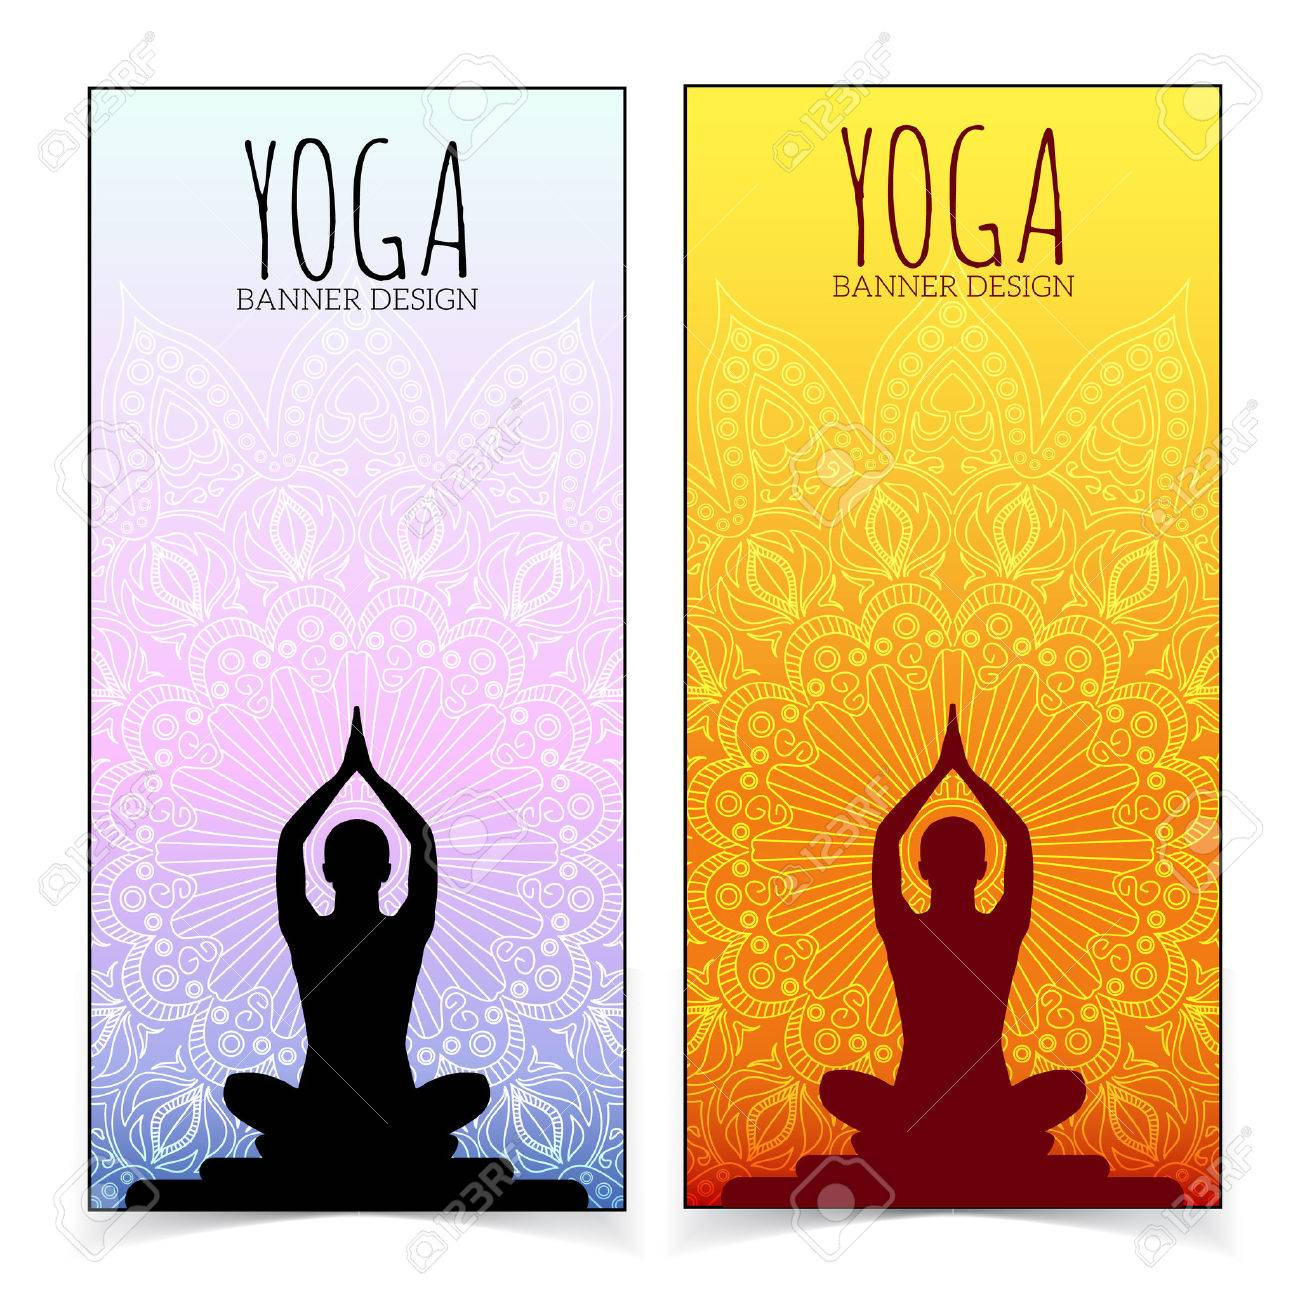 Yoga banner collection. Stock Vector - 34789606